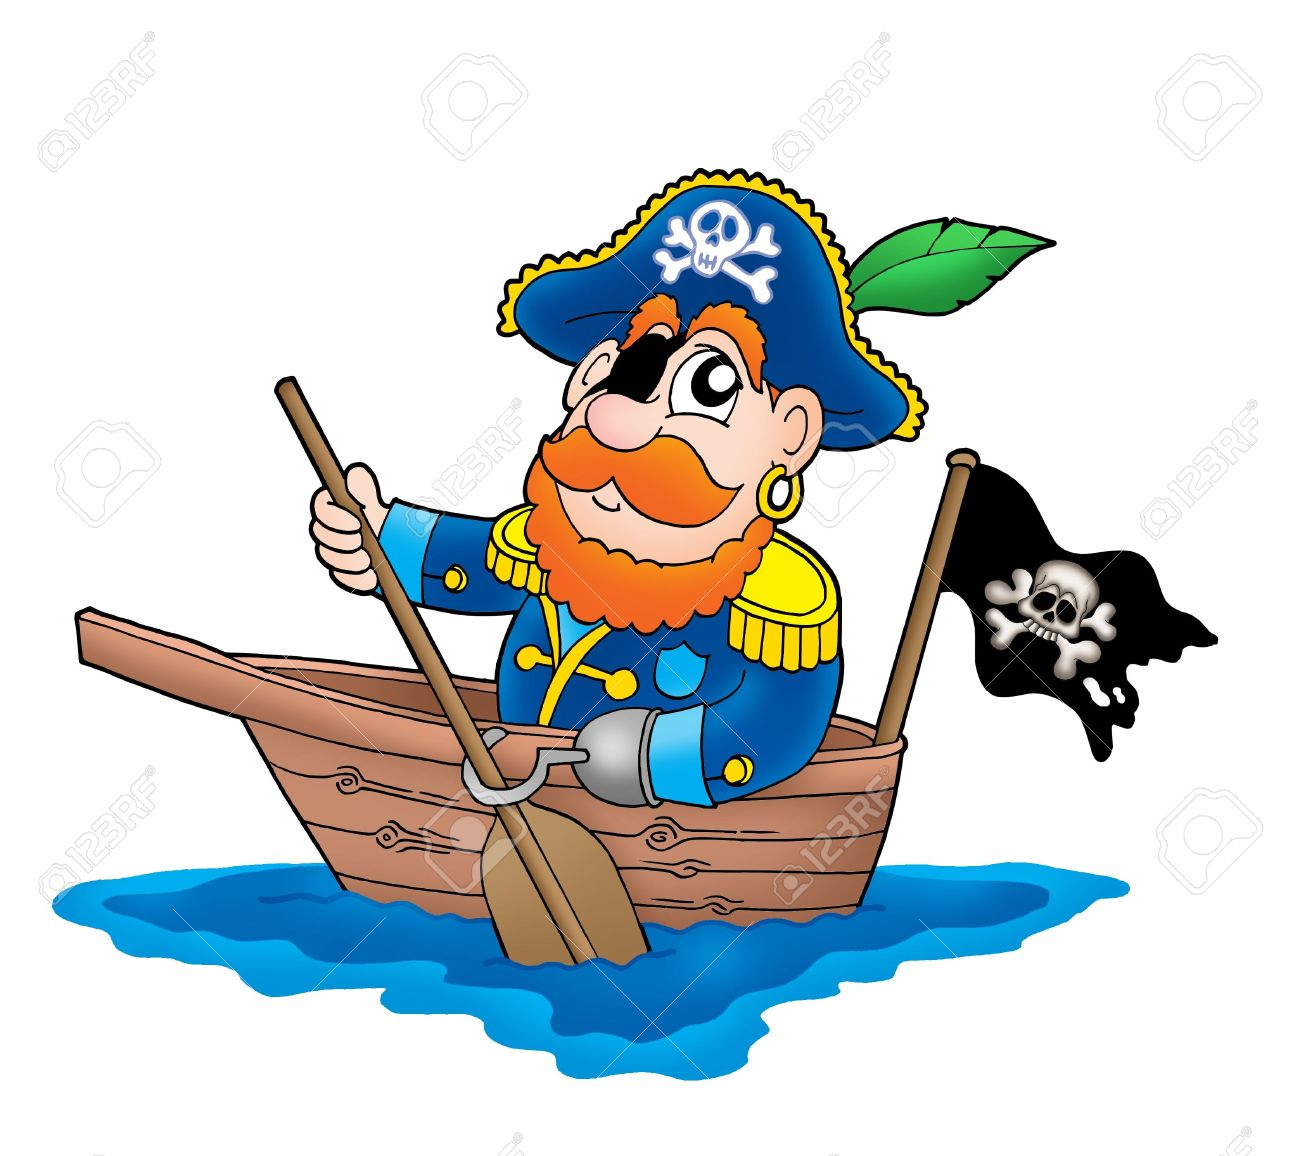 Pirate In The Boat Color Illustration Stock Photo Picture And